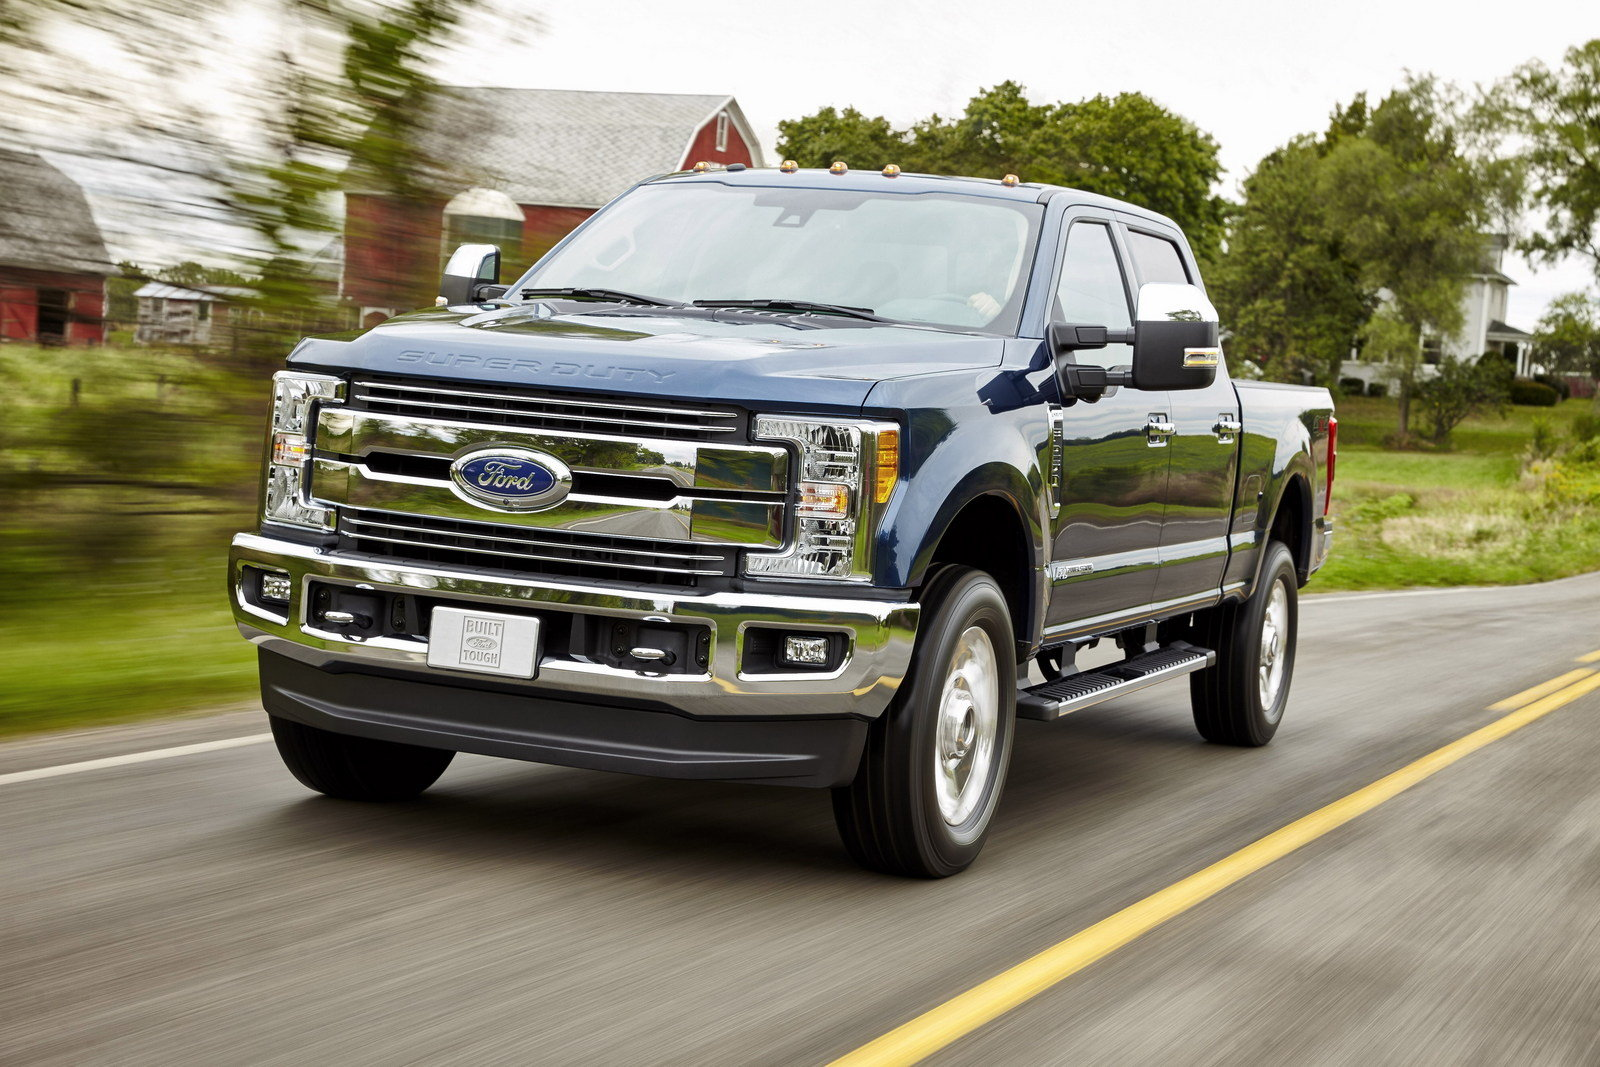 2017 ford super duty picture 648382 truck review top speed. Black Bedroom Furniture Sets. Home Design Ideas